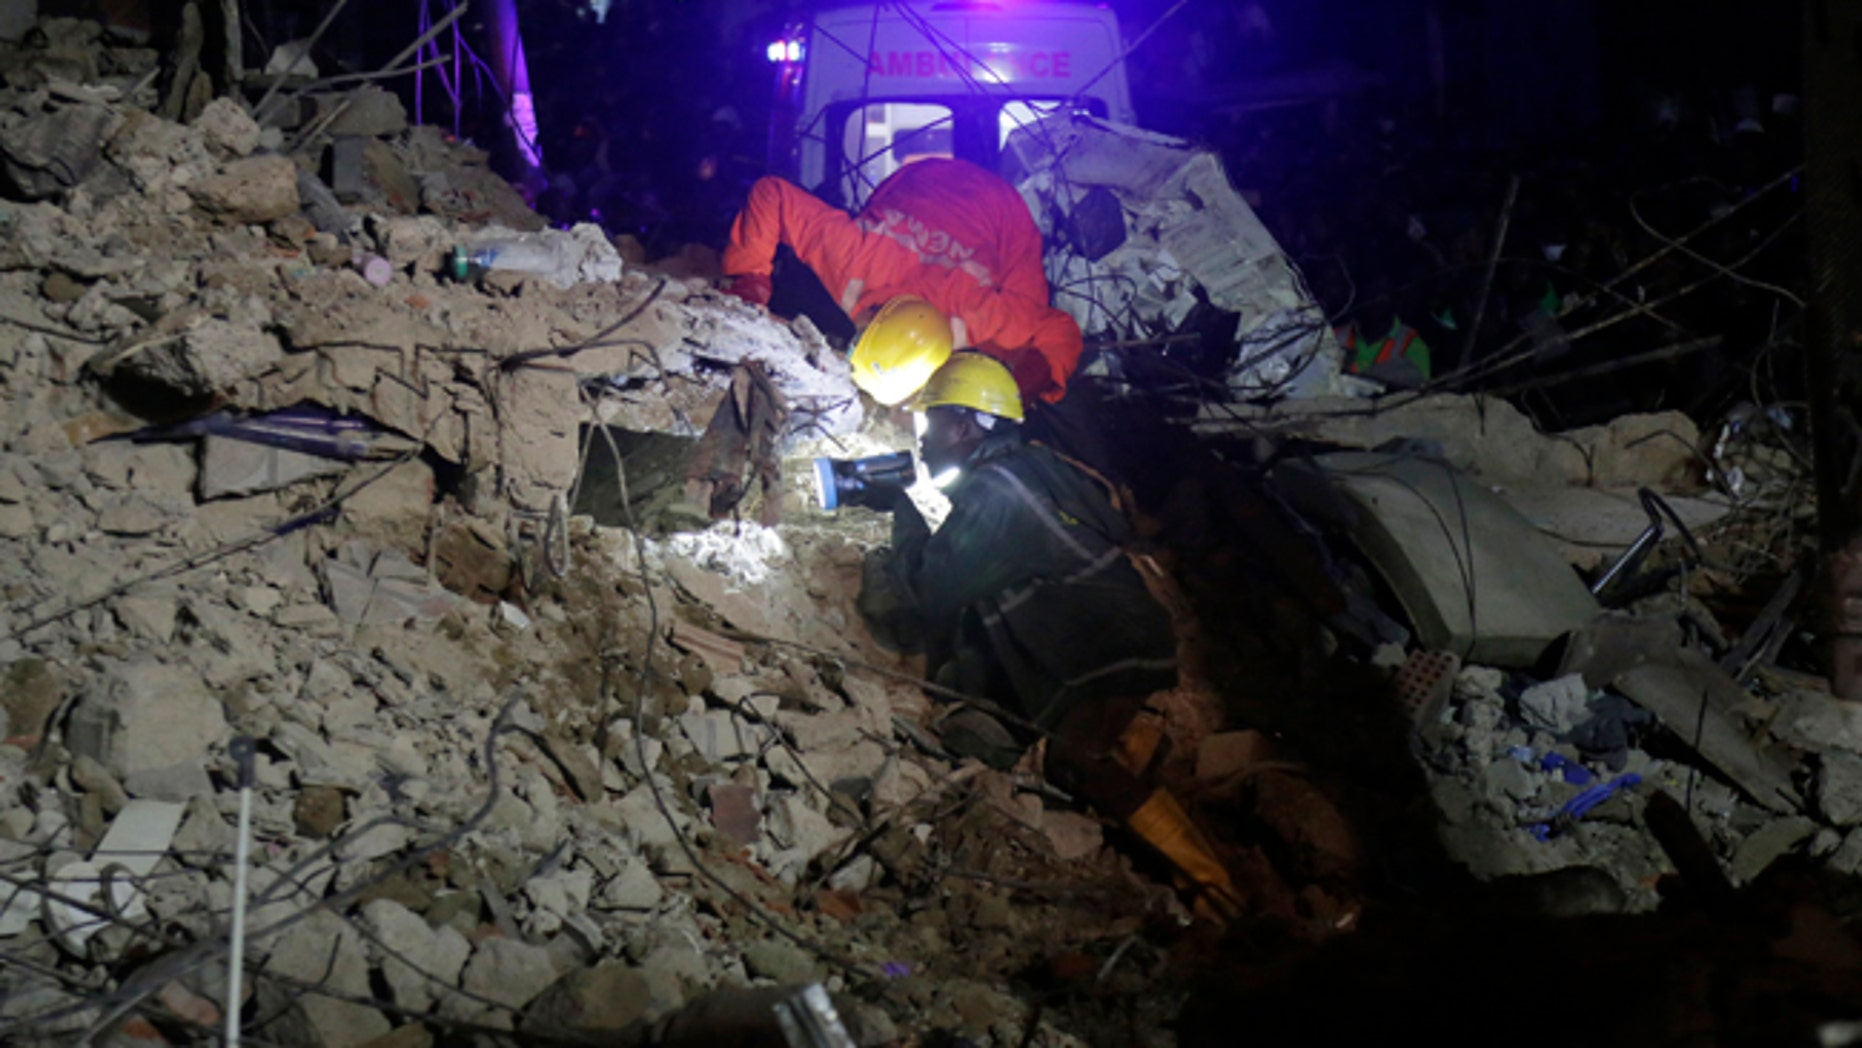 Rescue workers use flashlights to search for survivors at the rubbles of a collapsed building in a densely populated neighborhood in Lagos, Nigeria. Tuesday, July 25, 2017. Rescue work is still ongoing. (AP Photo/Sunday Alamba)